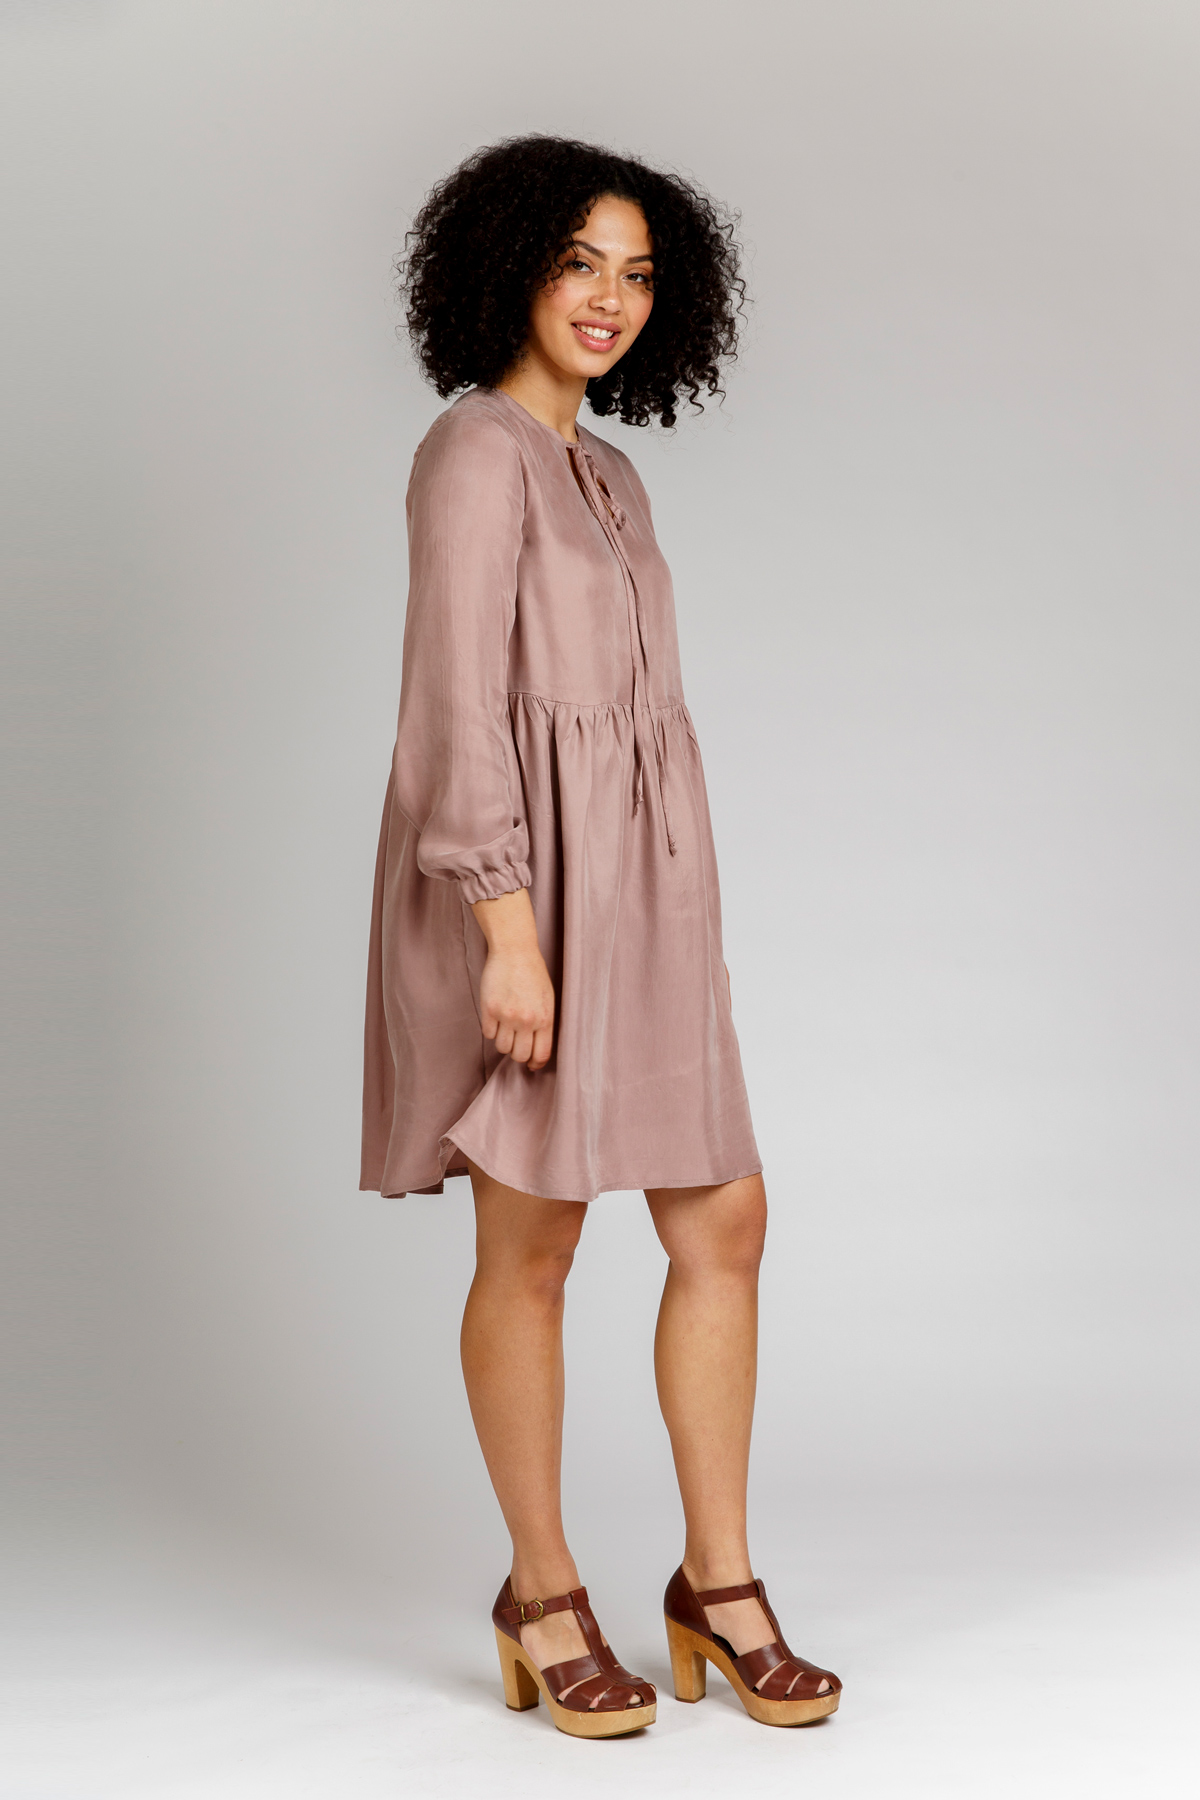 Megan Nielsen Sudley dress View C includes long sleeves with elastic cuffs, a gathered skirt, full lining and lovely long ties. Keyhole can be worn at the back or front of this clever design.